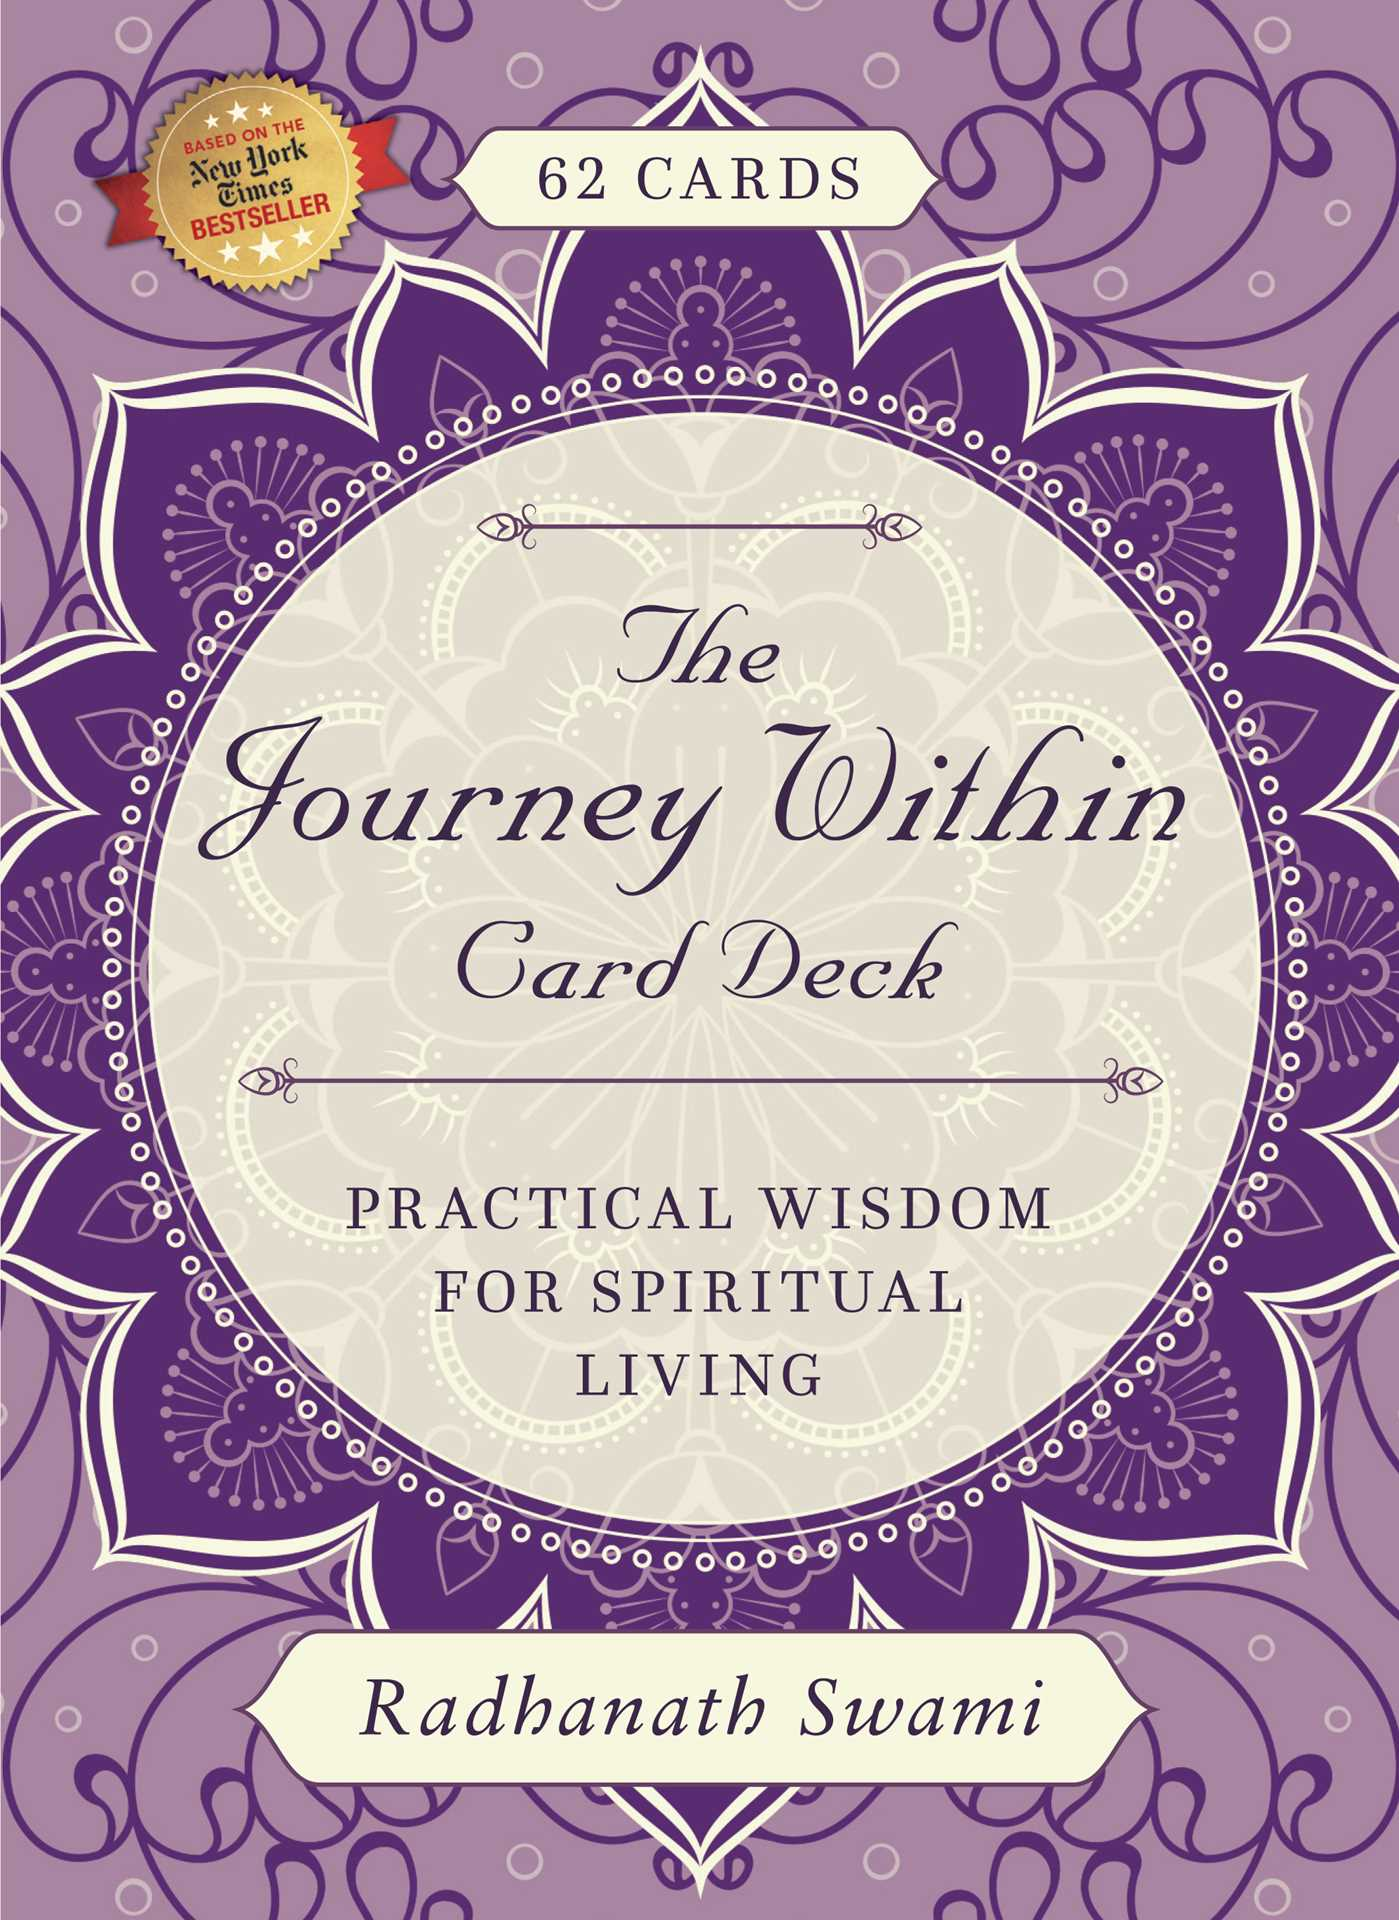 The journey within card deck 9781683830290 hr